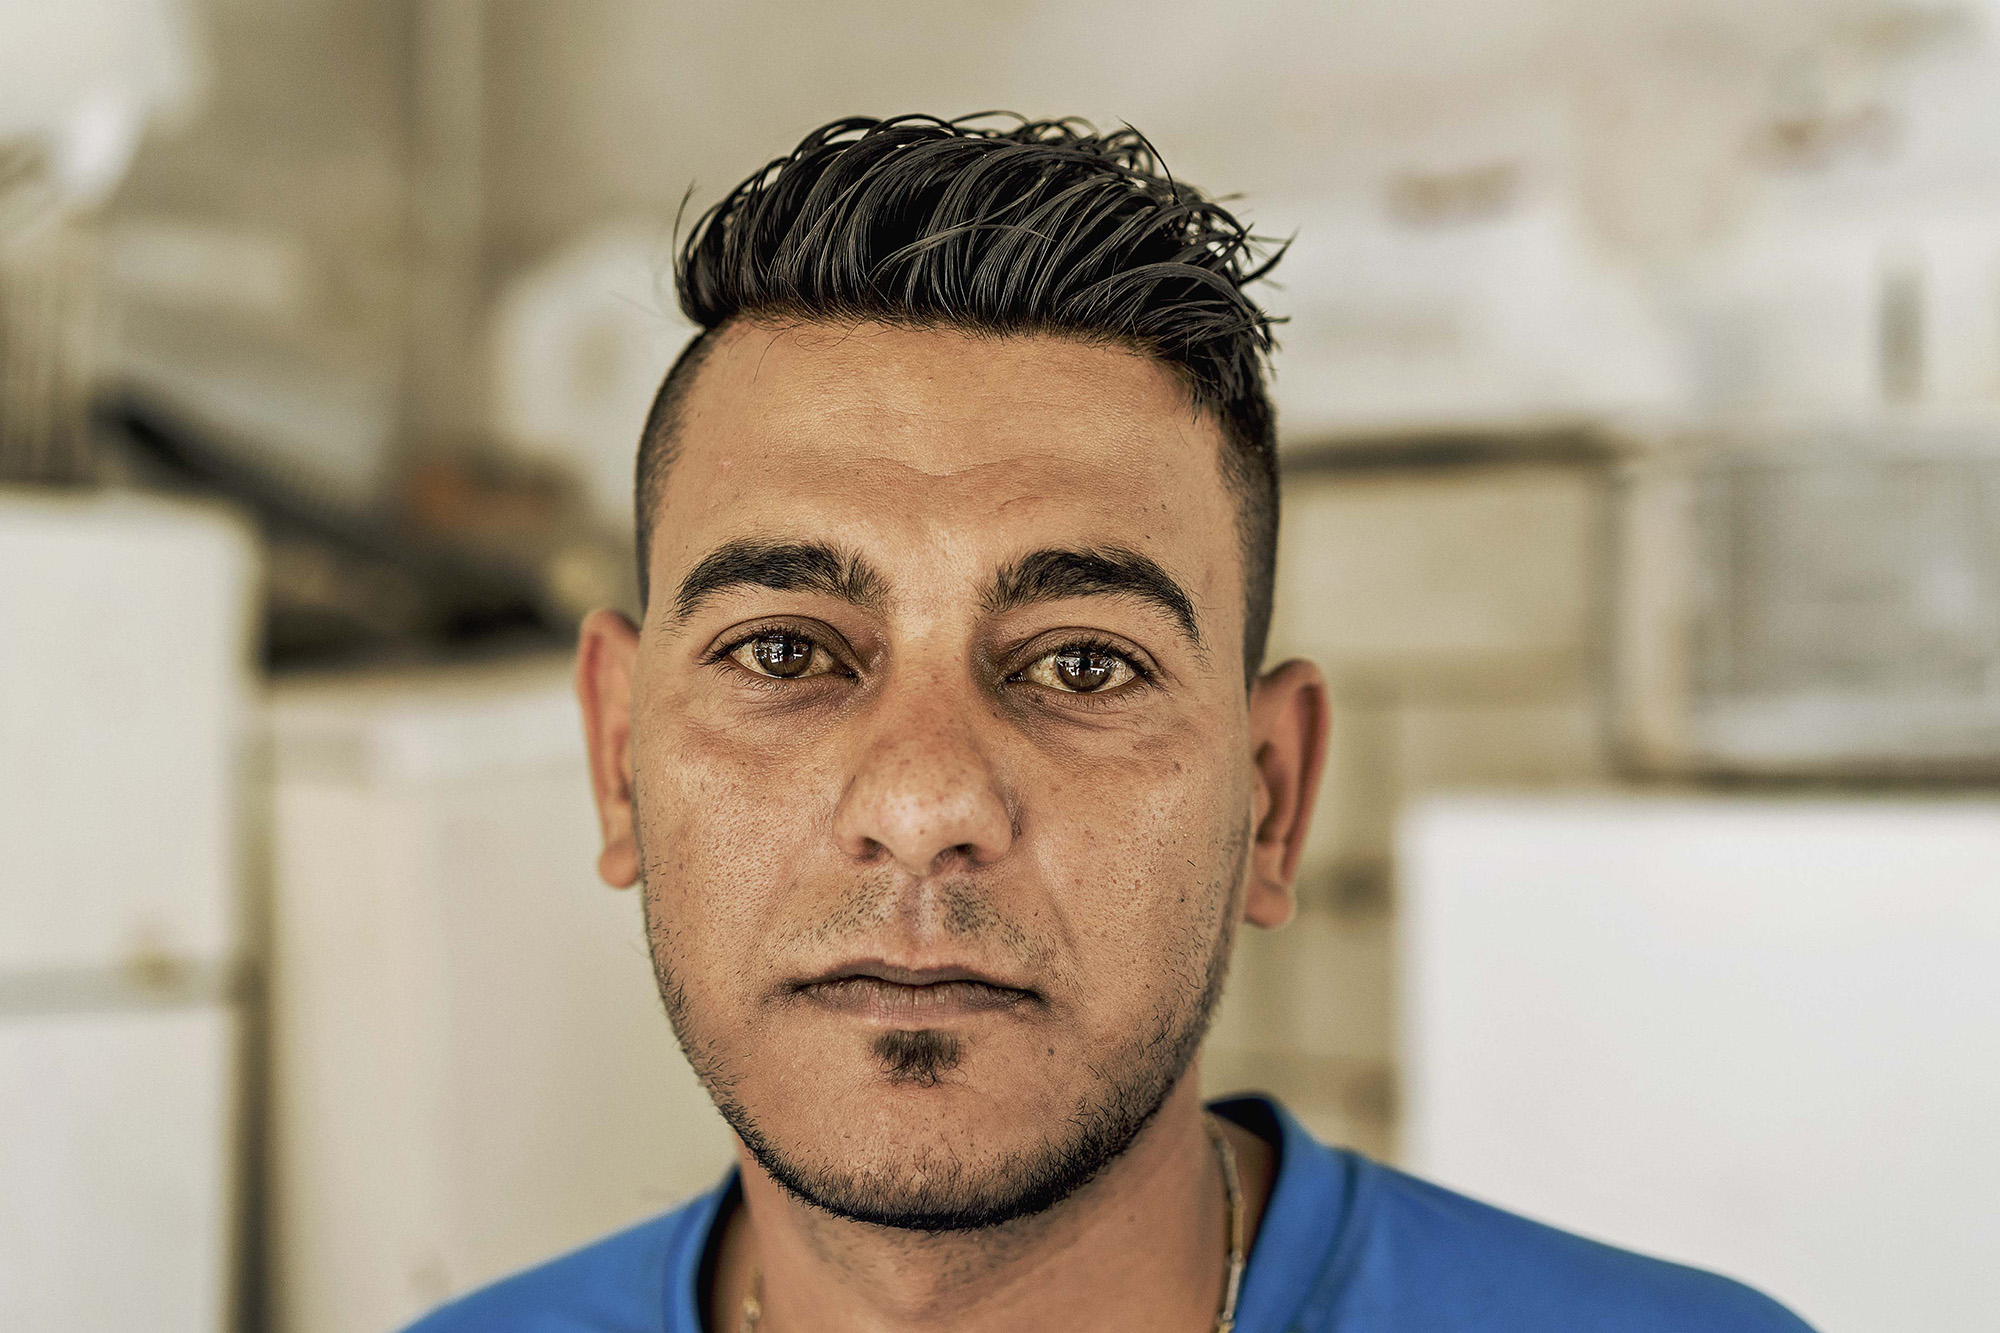 Where ART you from | Ali Kanaan | Electrical Worker